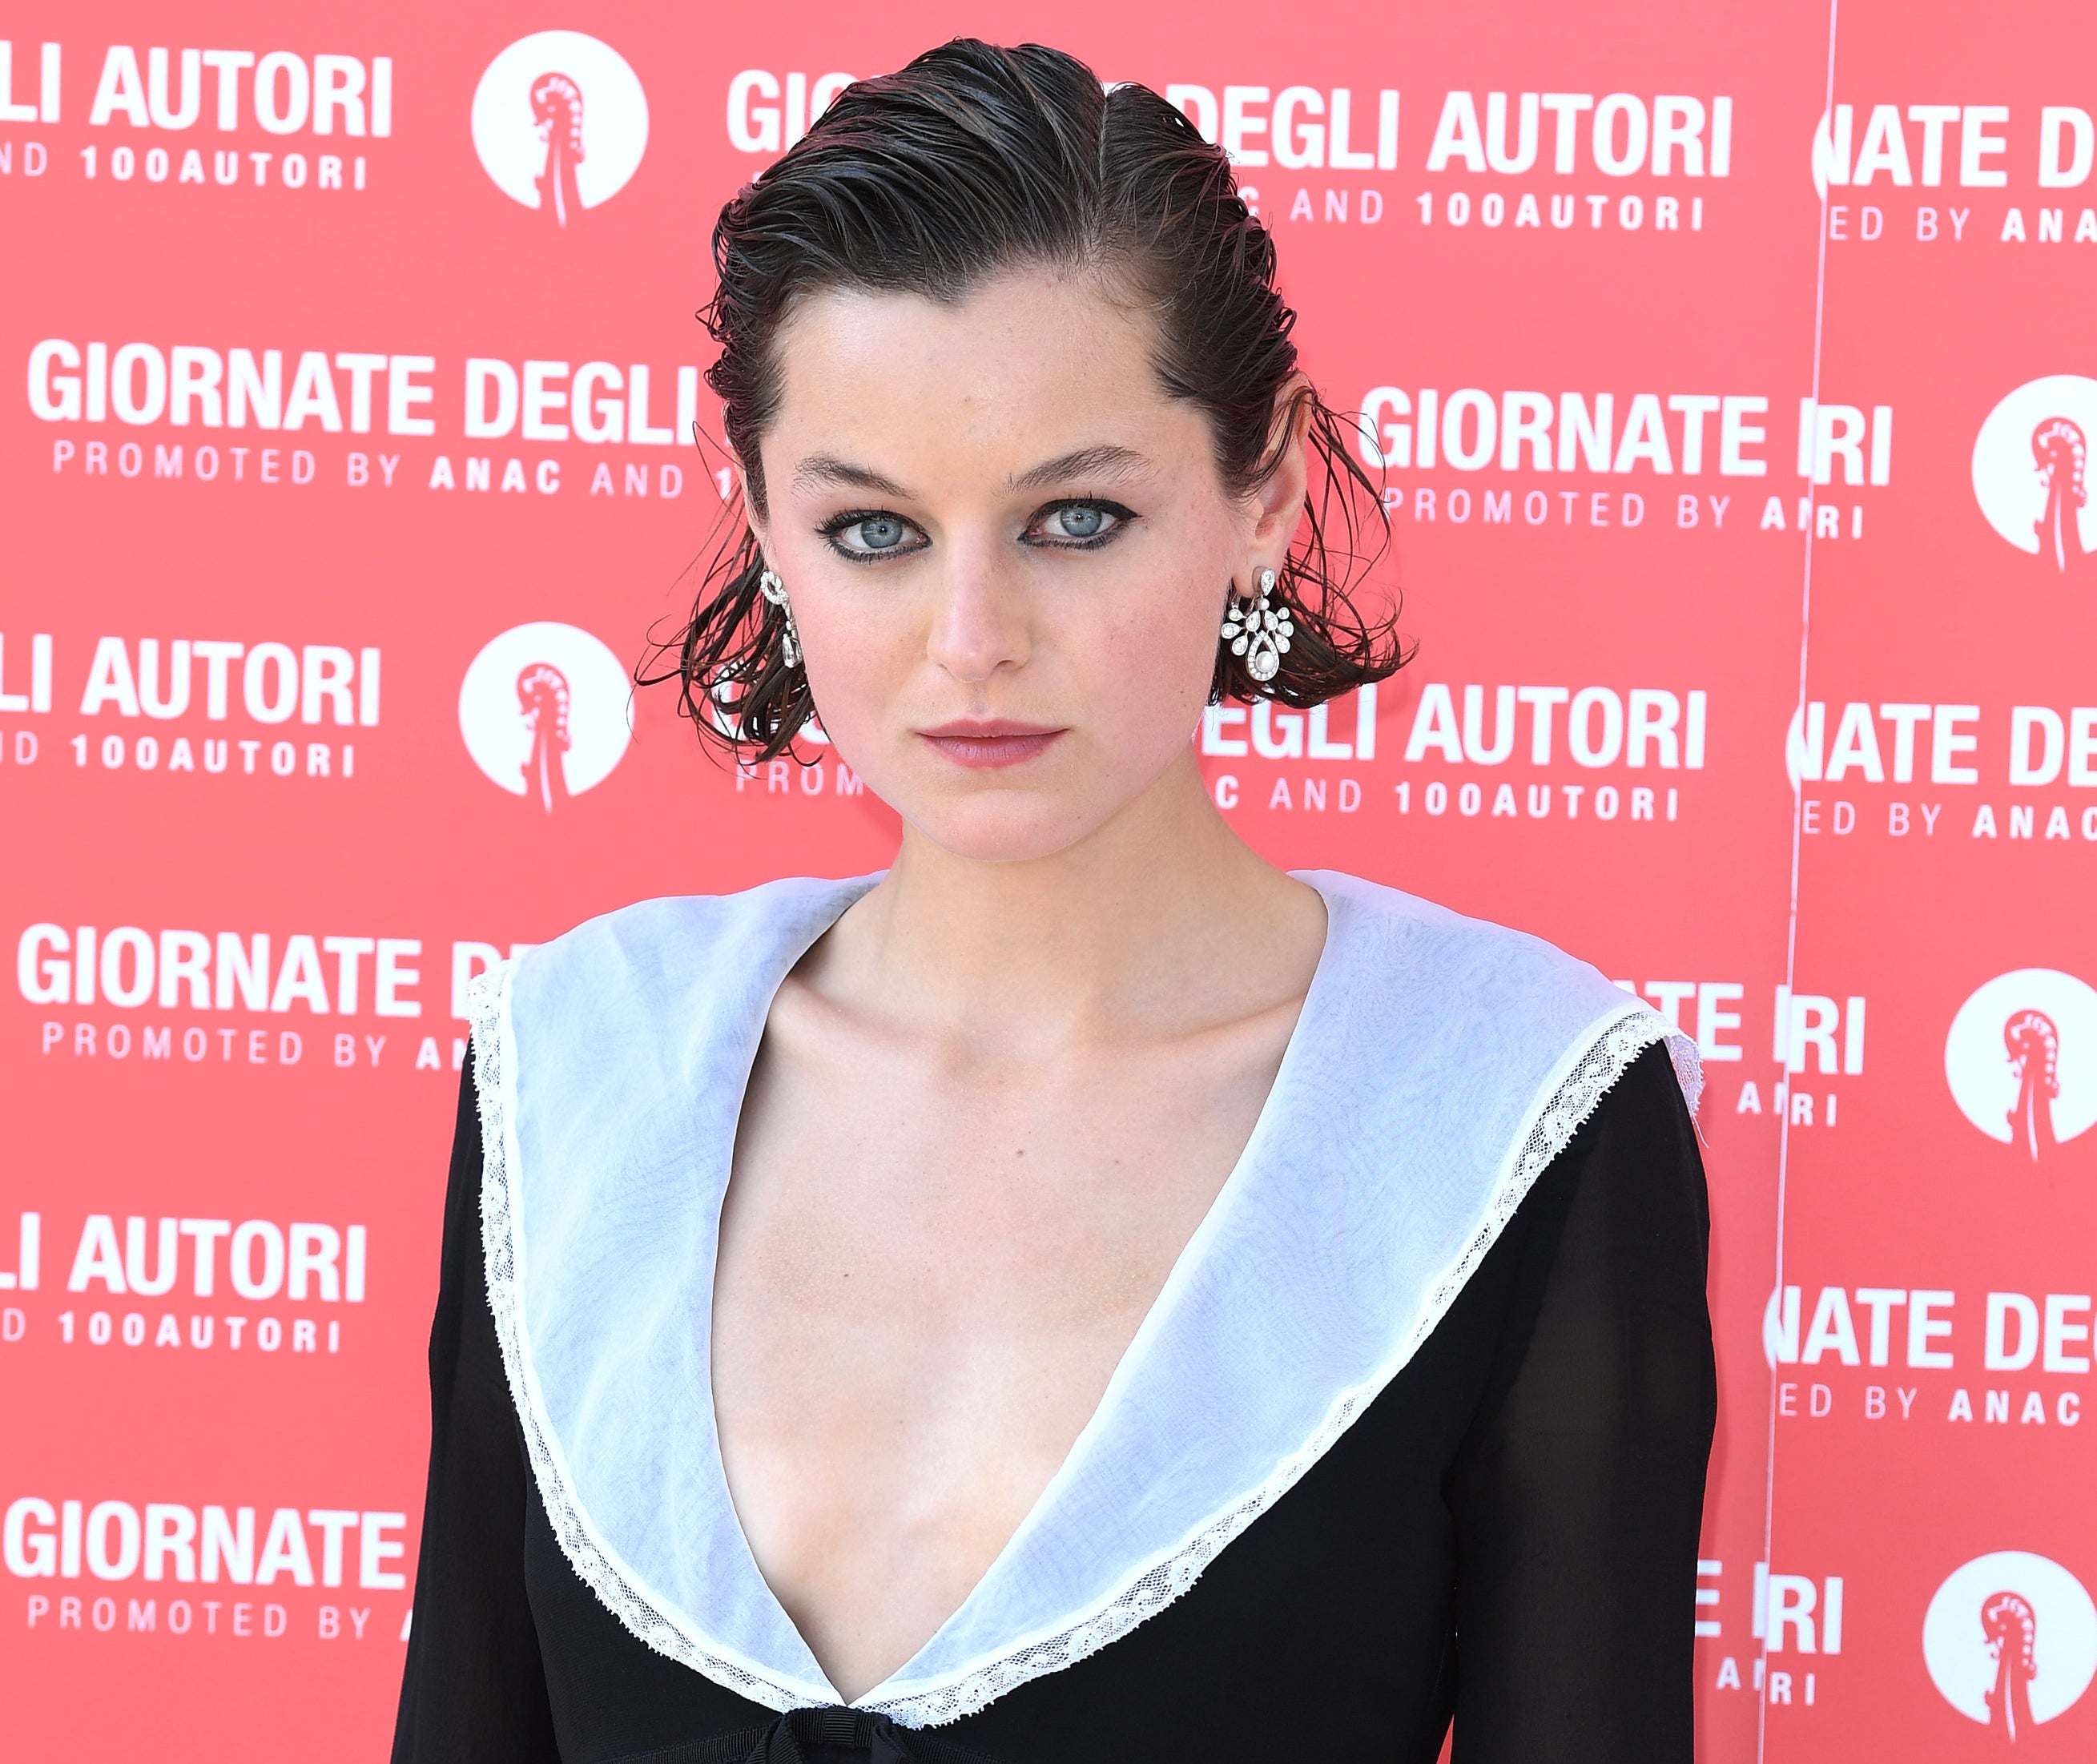 Emma wears a black gown with a plunging black neckline and oversized white collar